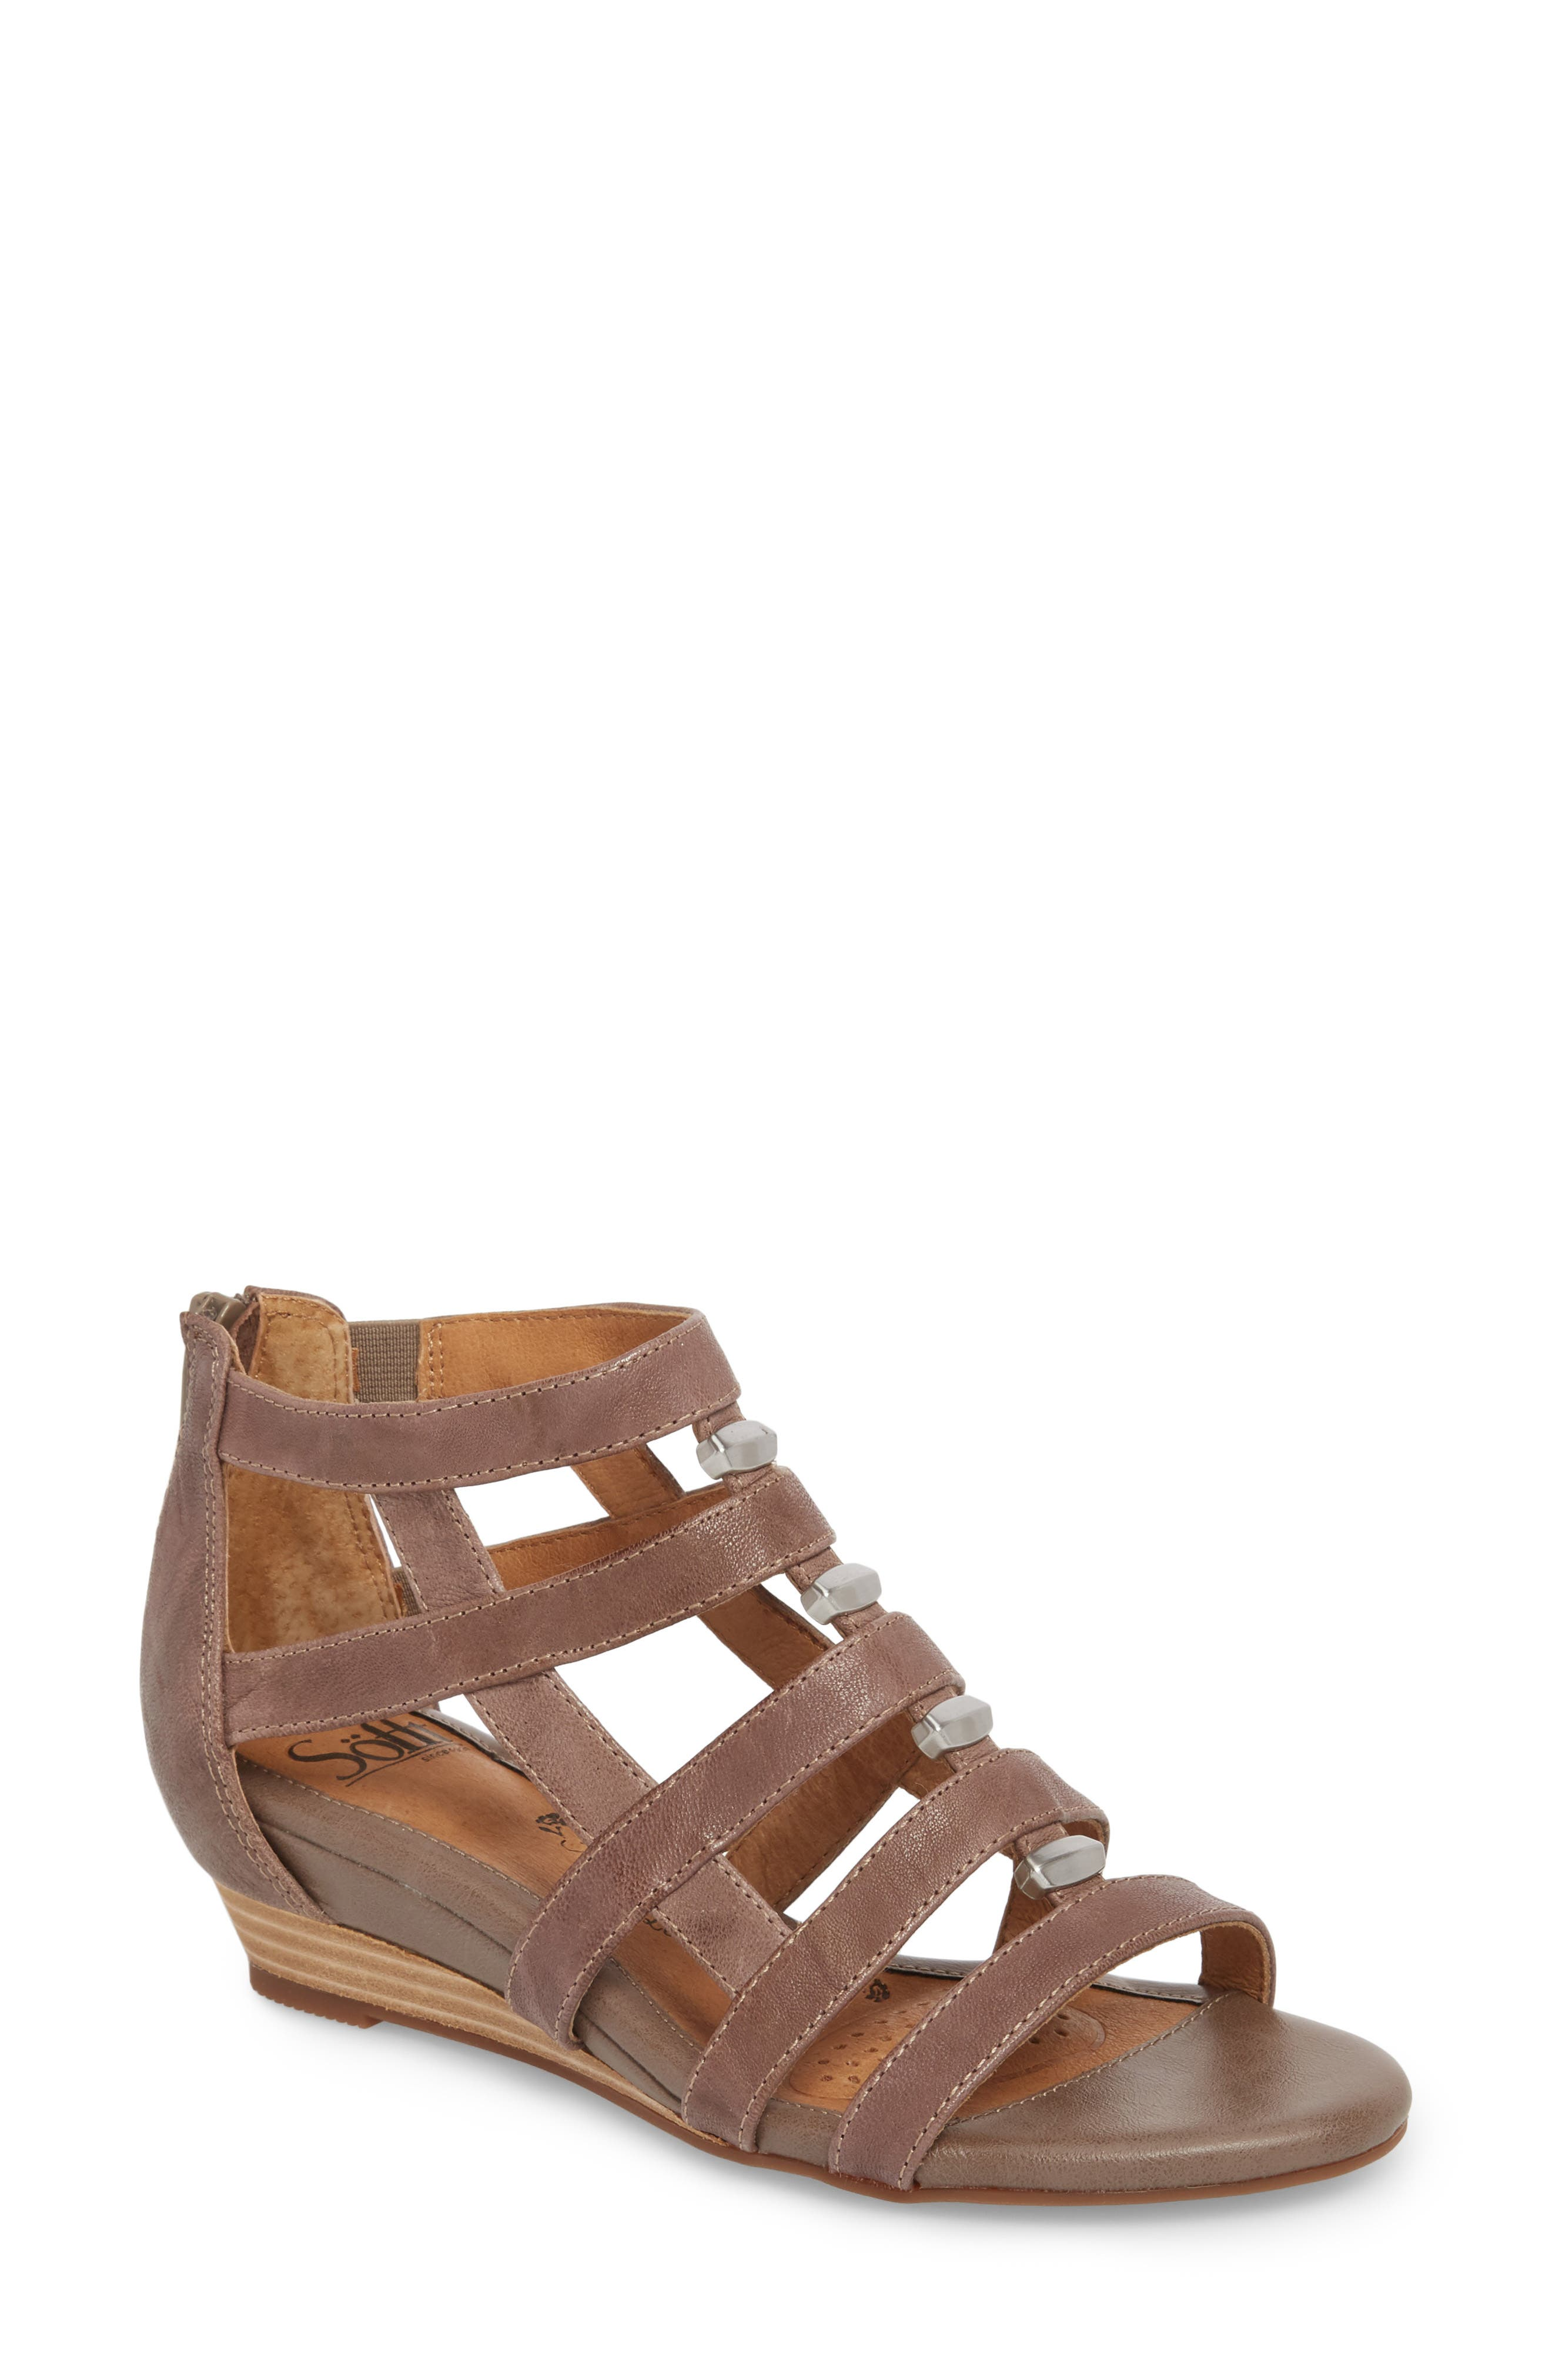 Rio Gladiator Wedge Sandal,                         Main,                         color, 030